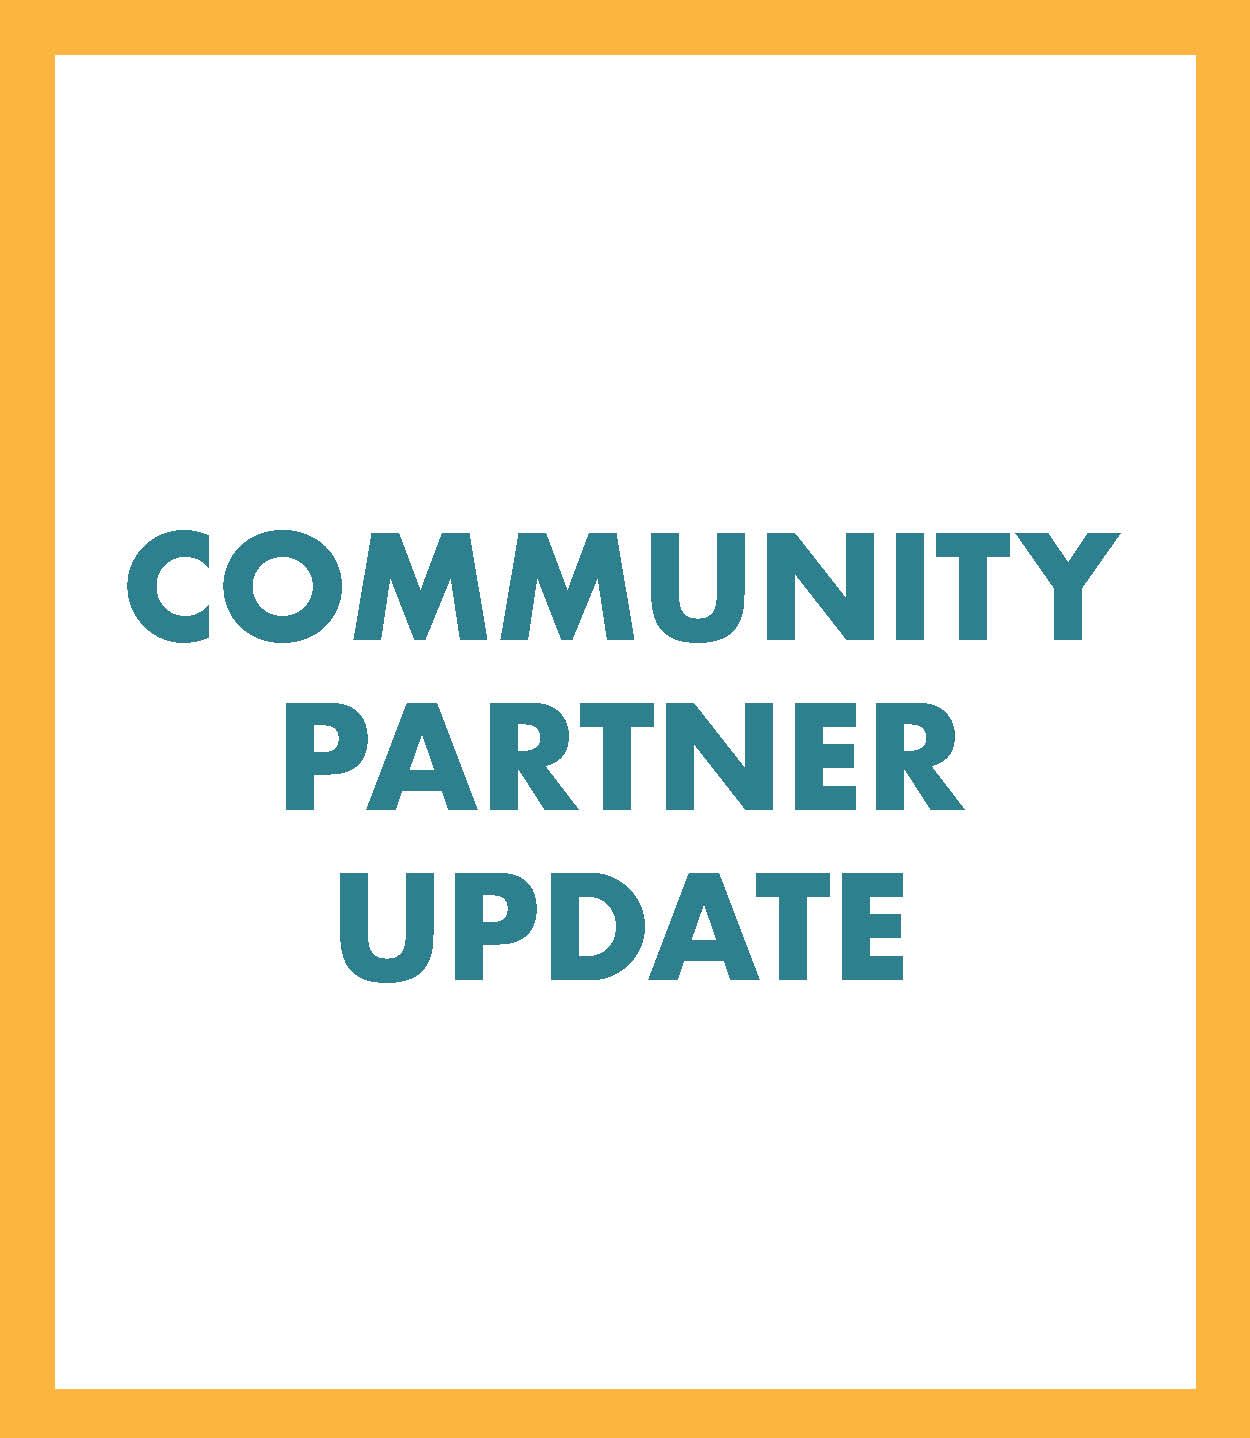 Community Partner Update icon